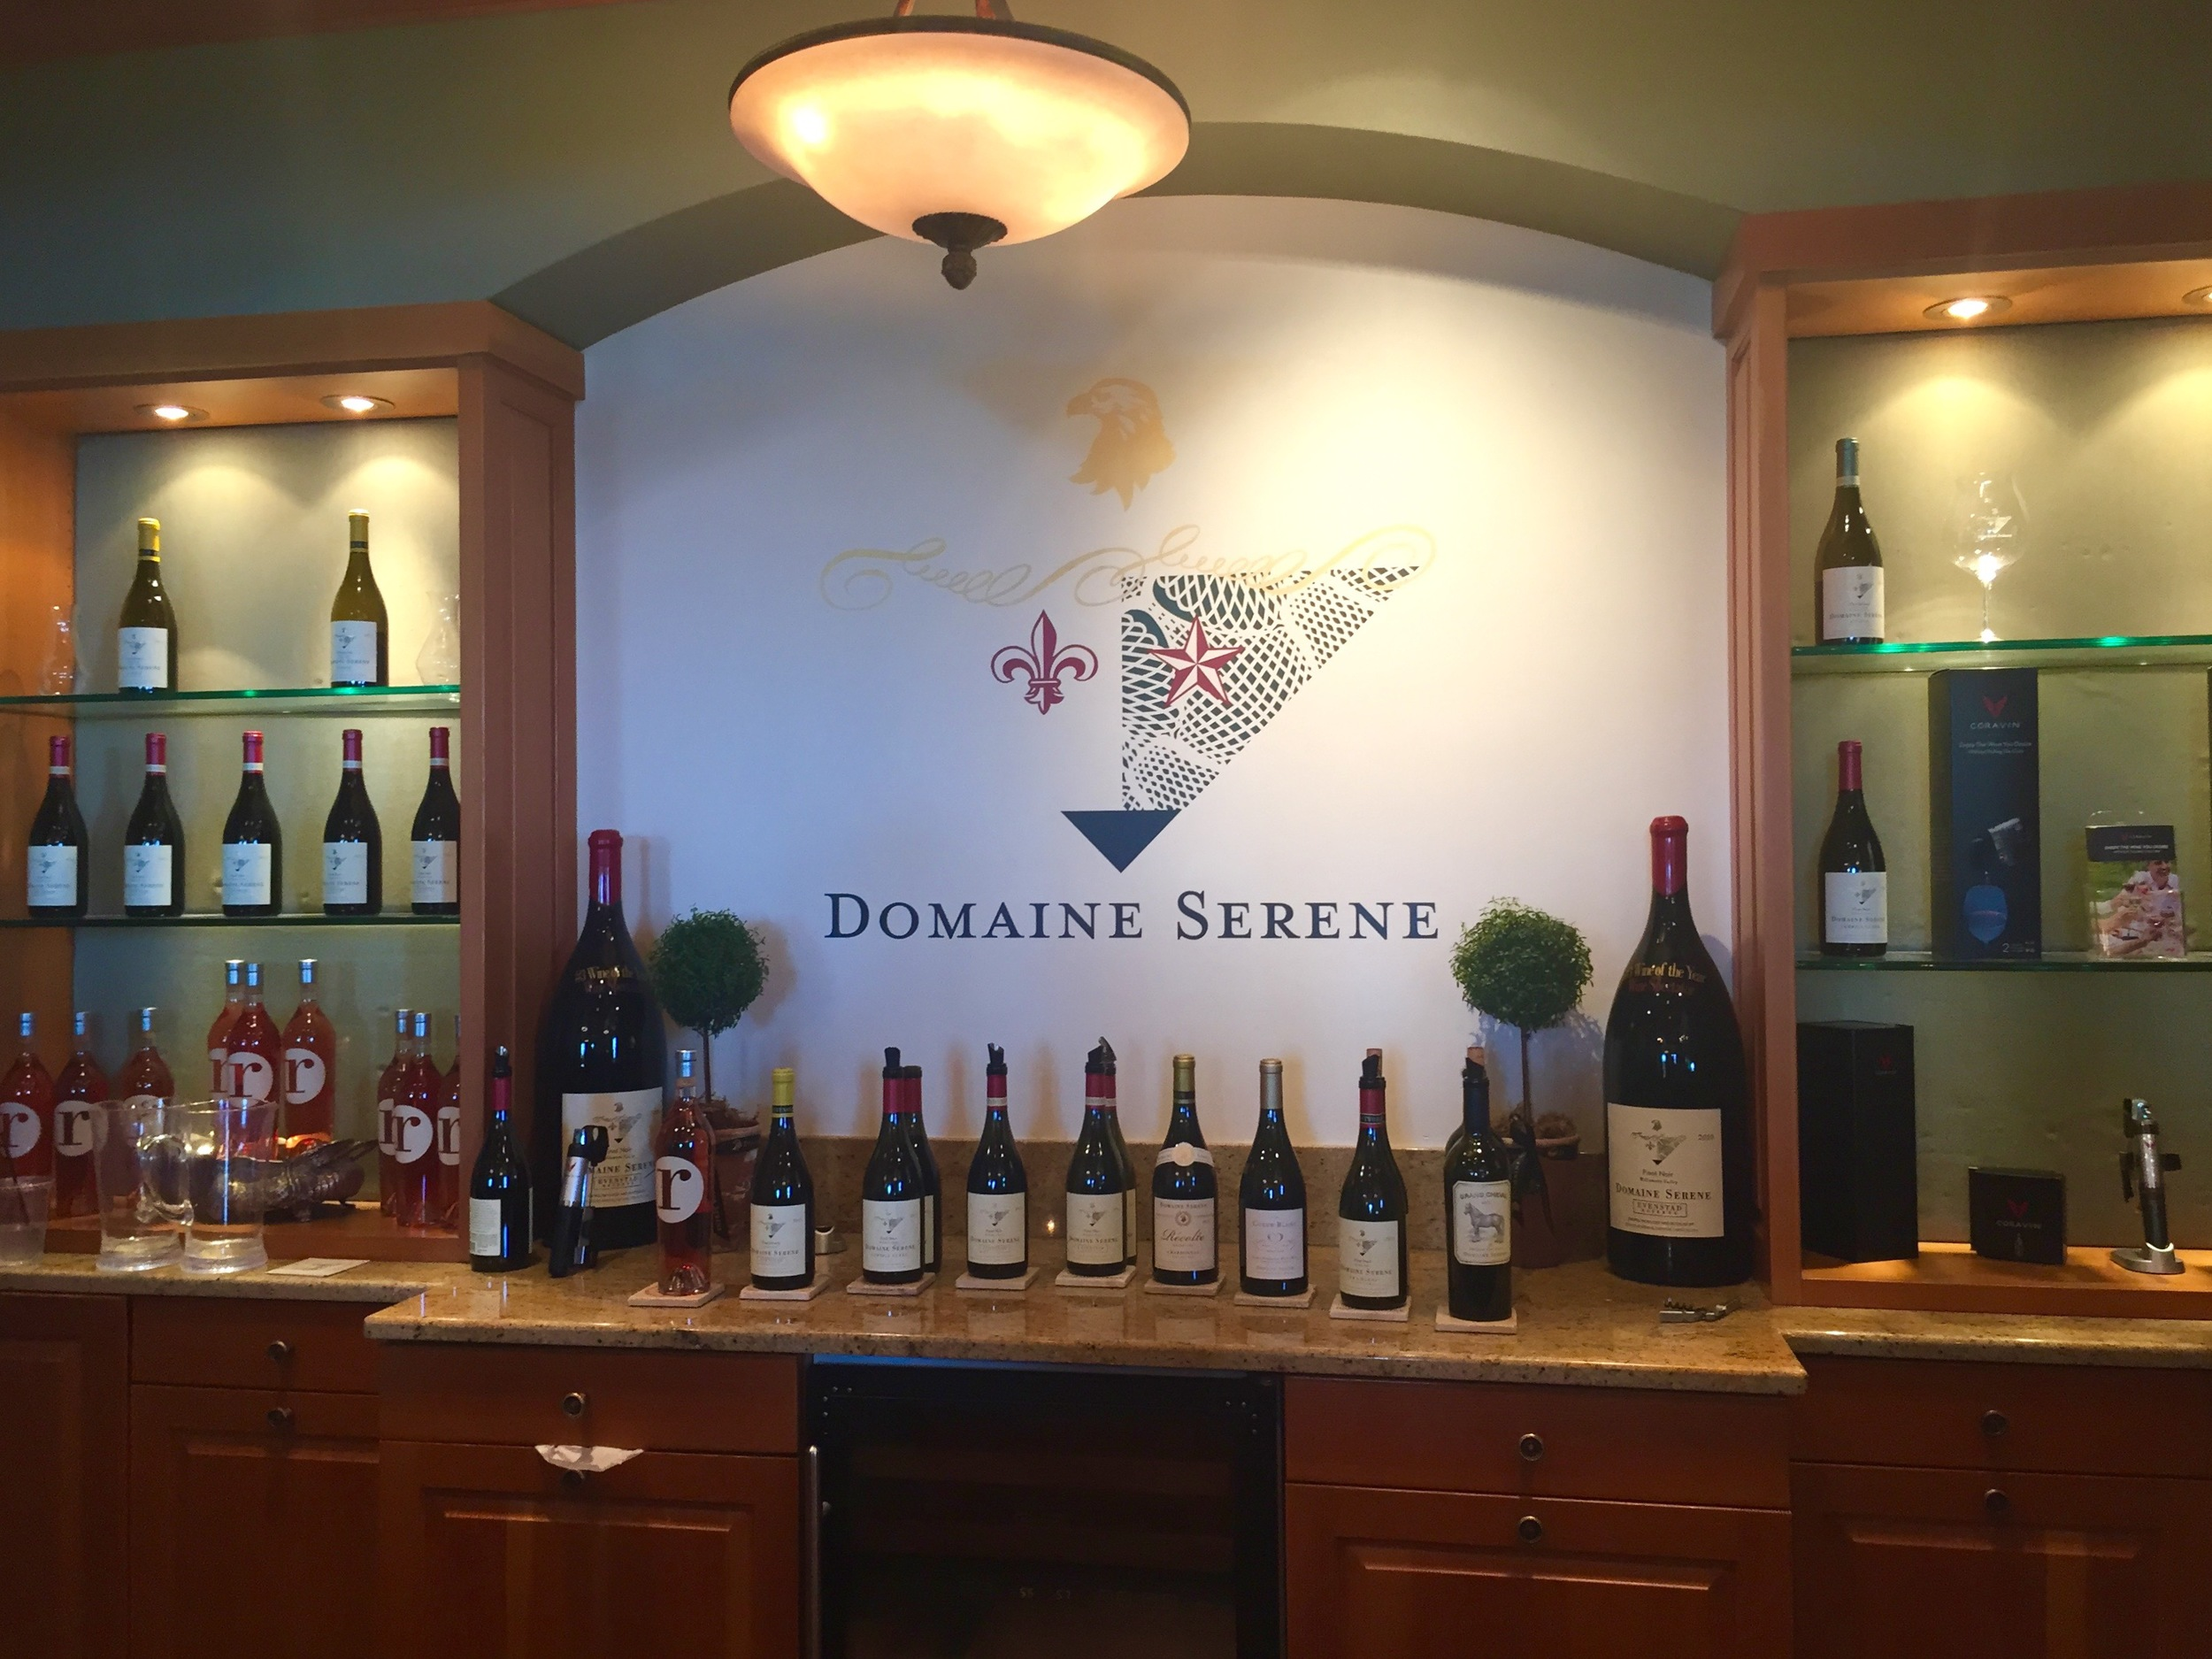 Second stop- Domaine Serene